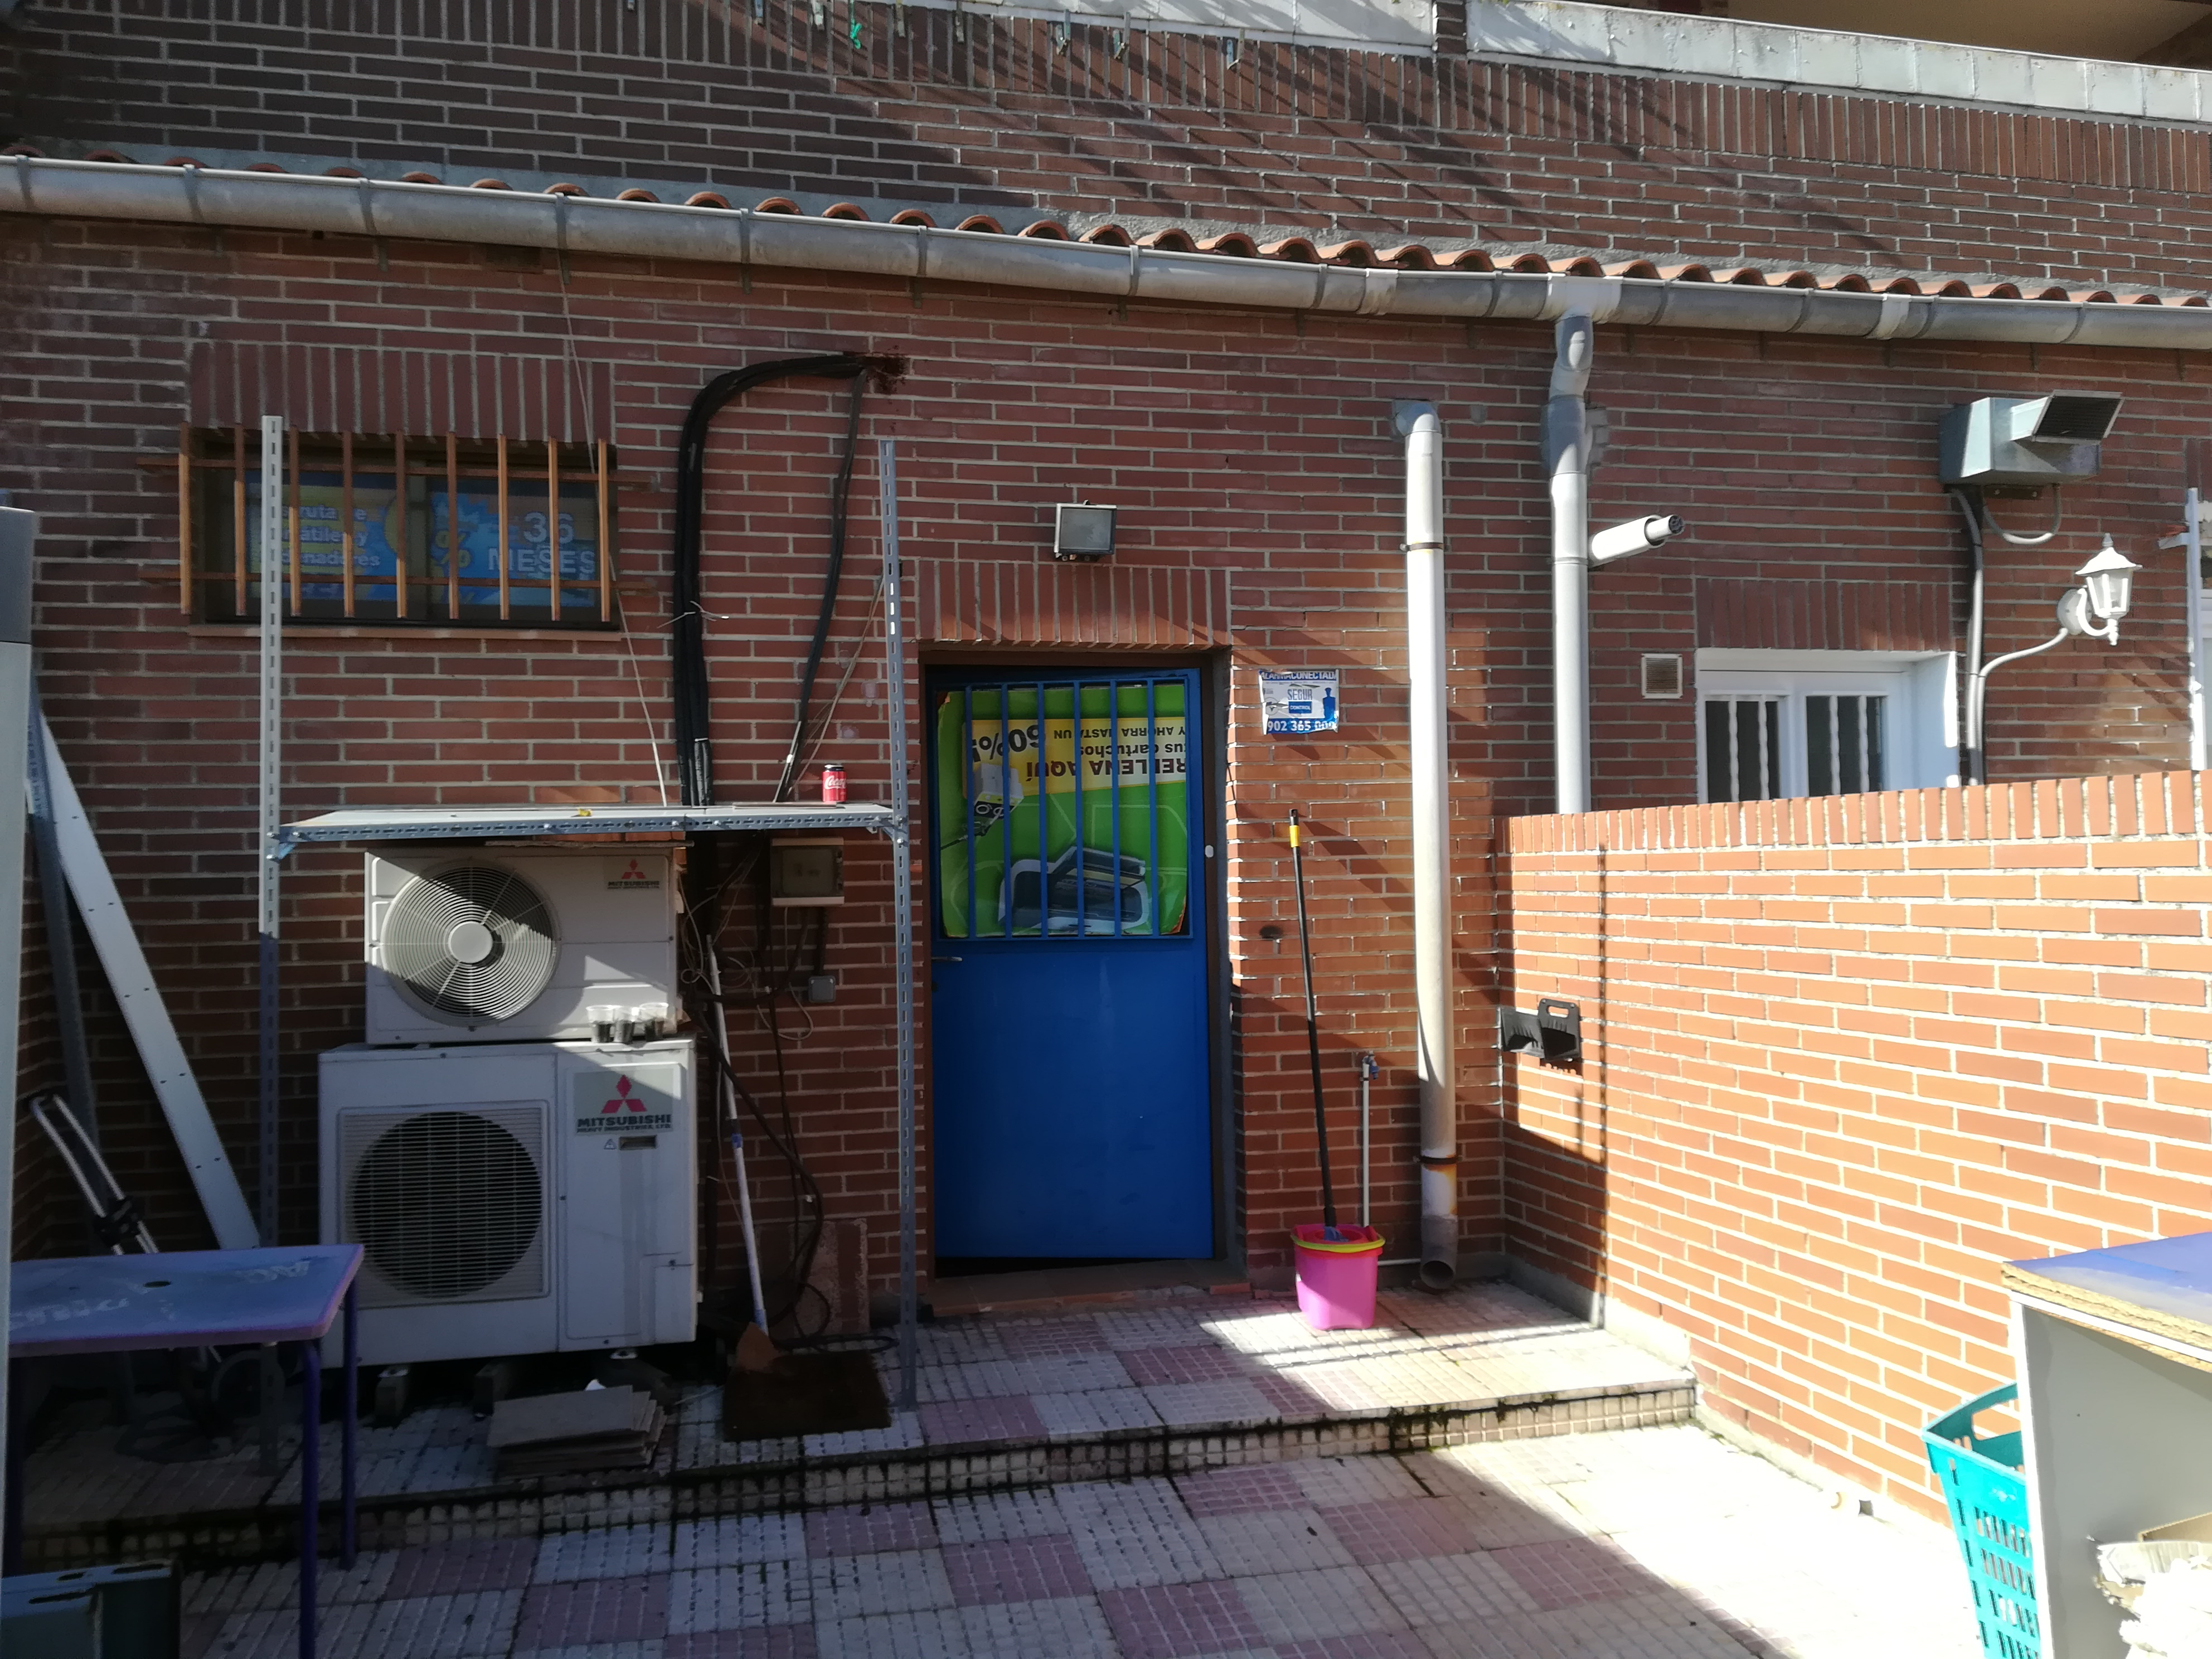 Local en venta en Algete (Madrid)